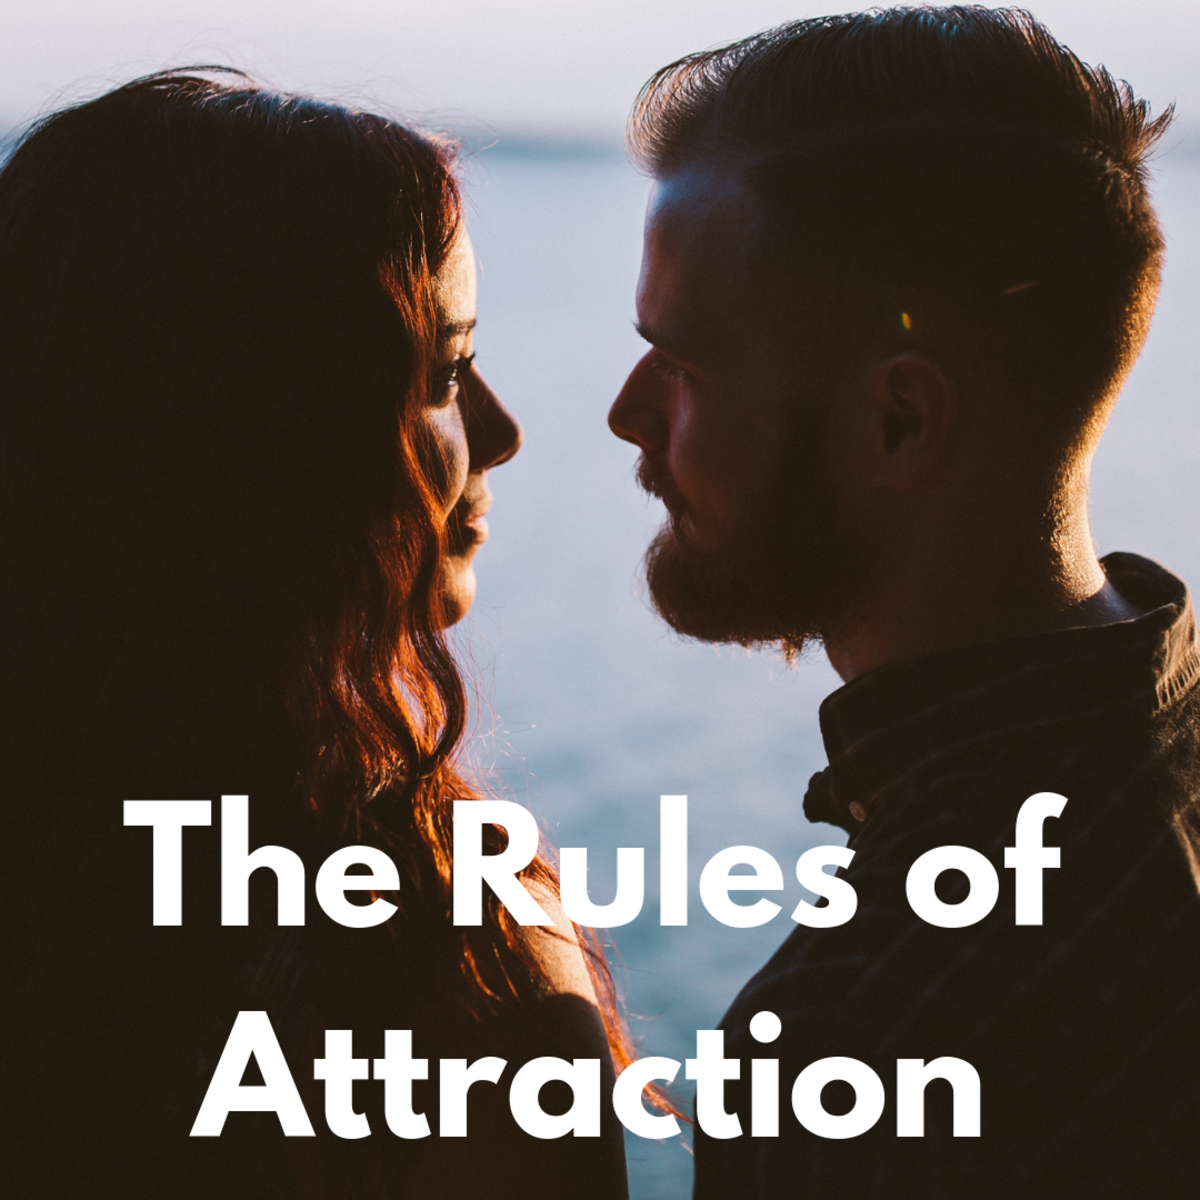 Why Are People Attracted to Each Other? It's Symmetry